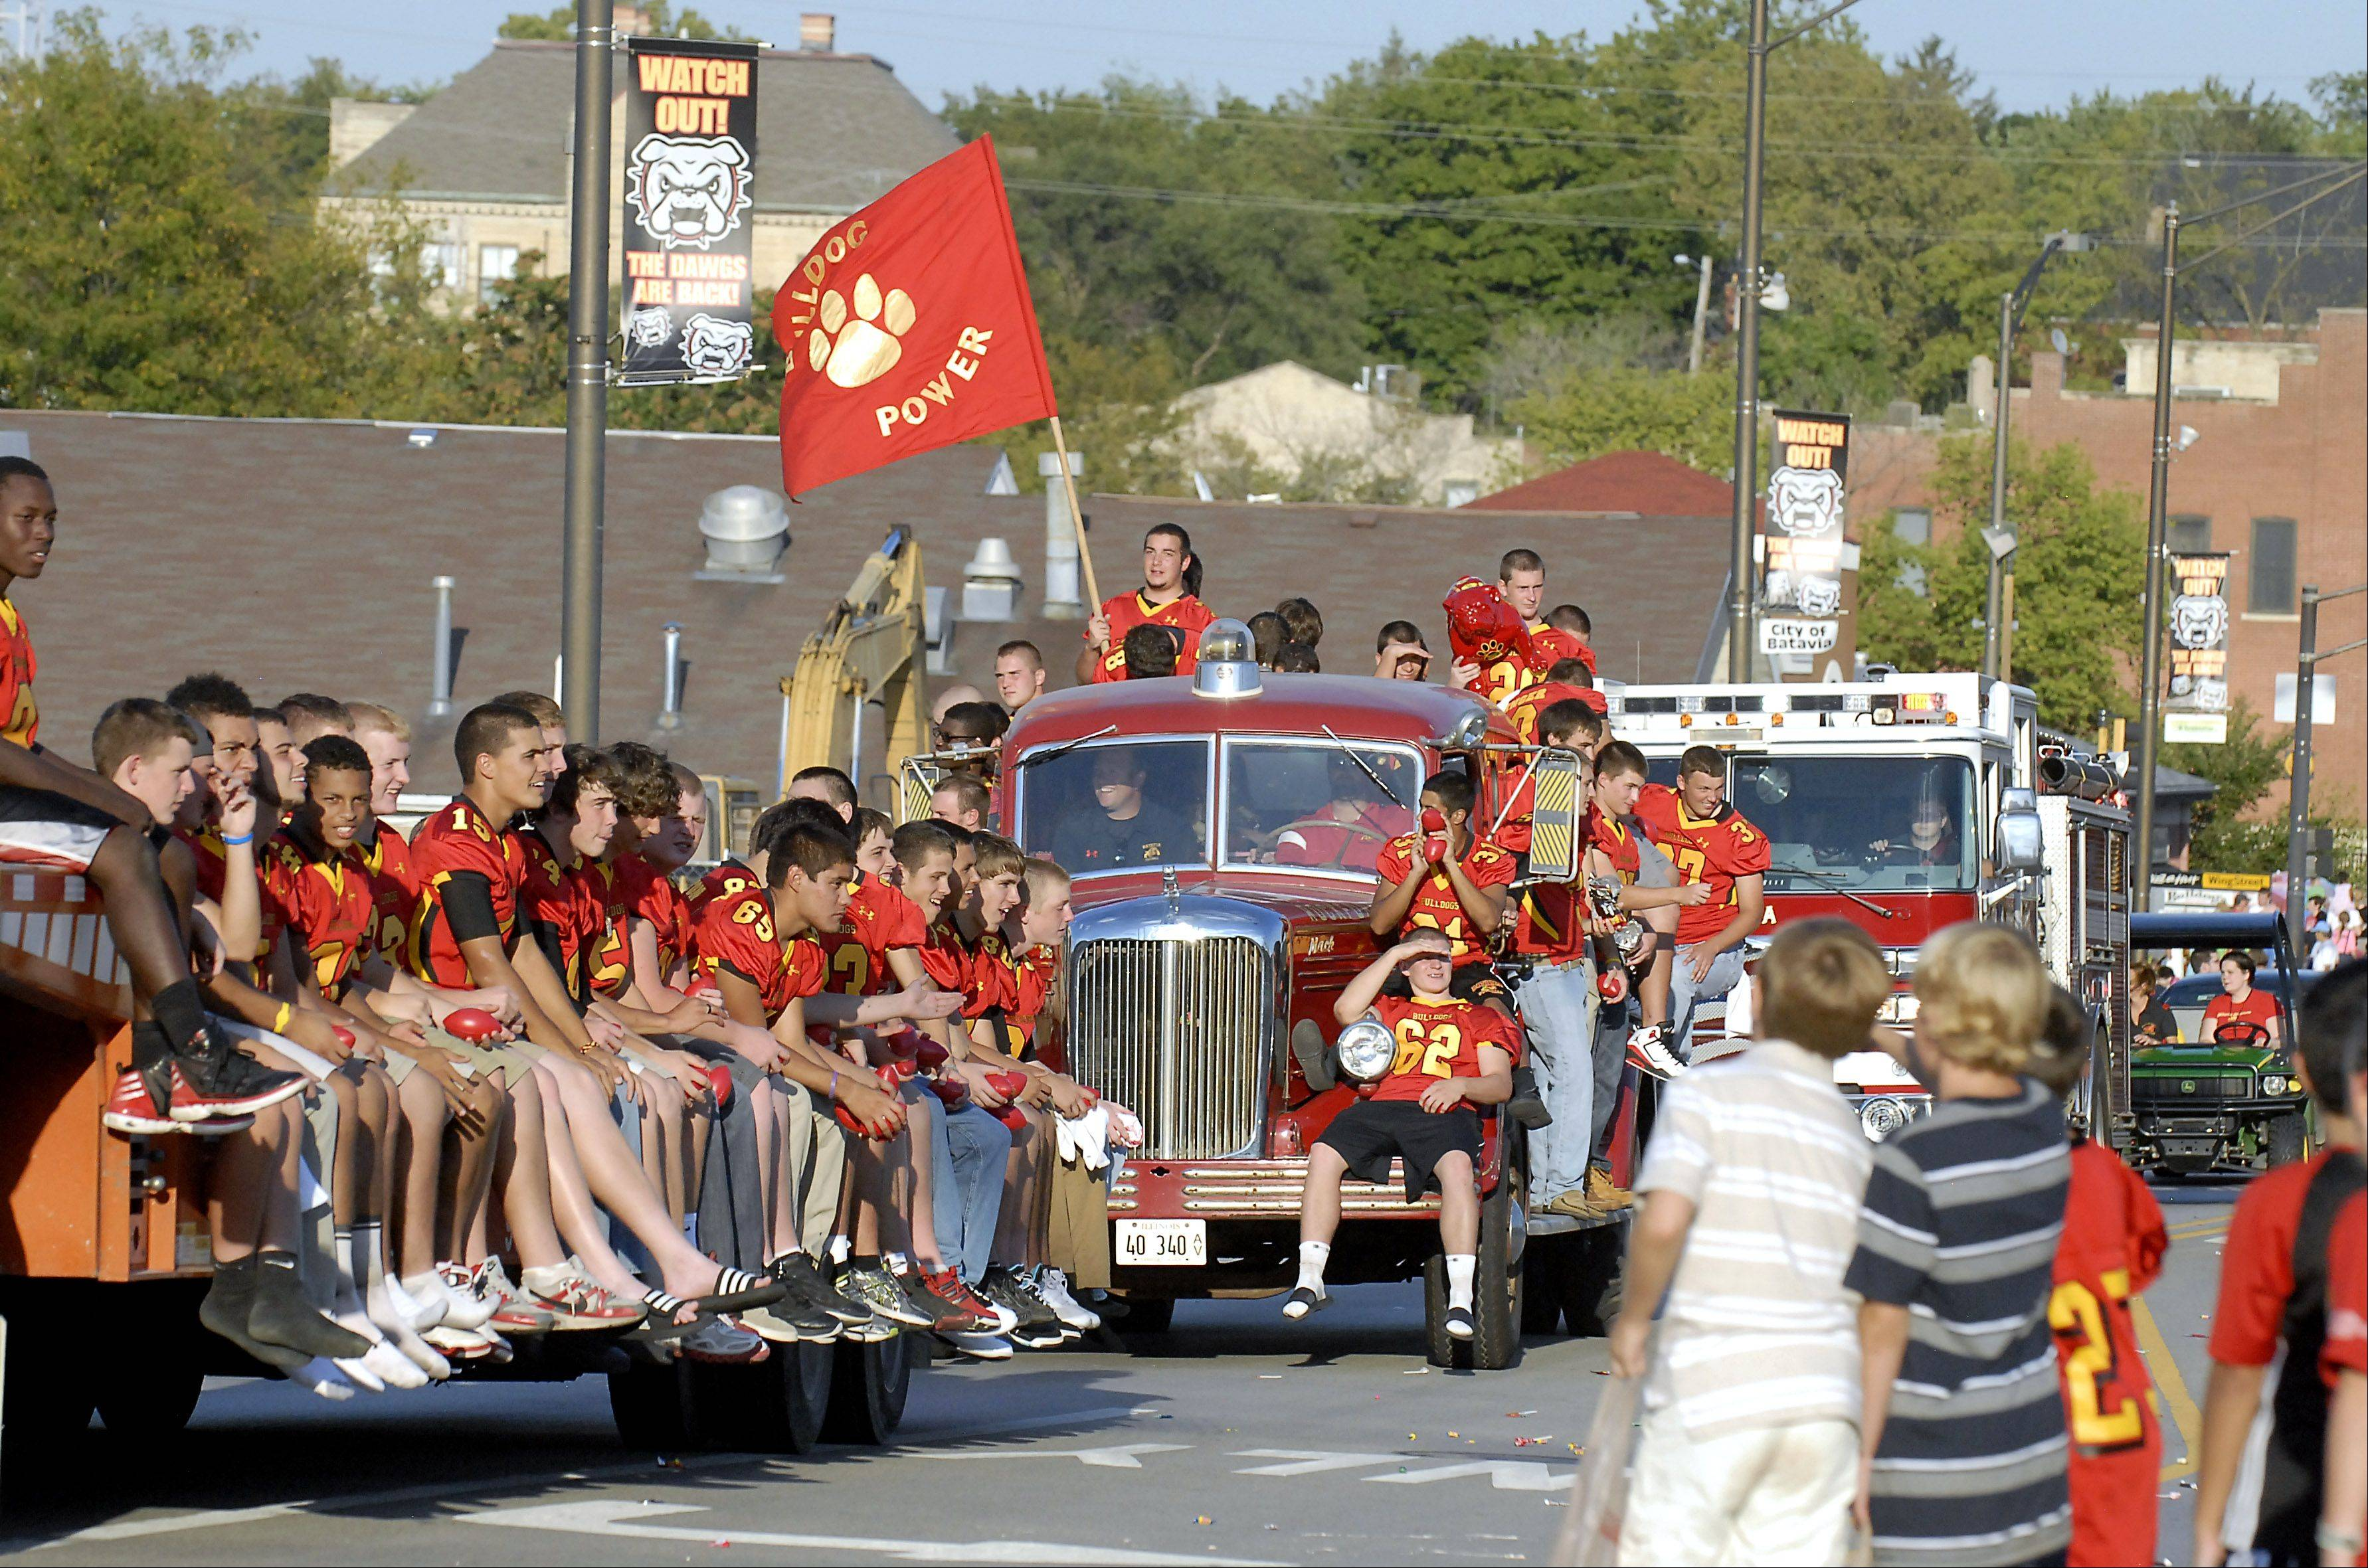 The Batavia High School varsity football team wraps up the school's homecoming parade last year on Wilson Street. This year's parade steps off at 5:30 p.m. Wednesday from the school.